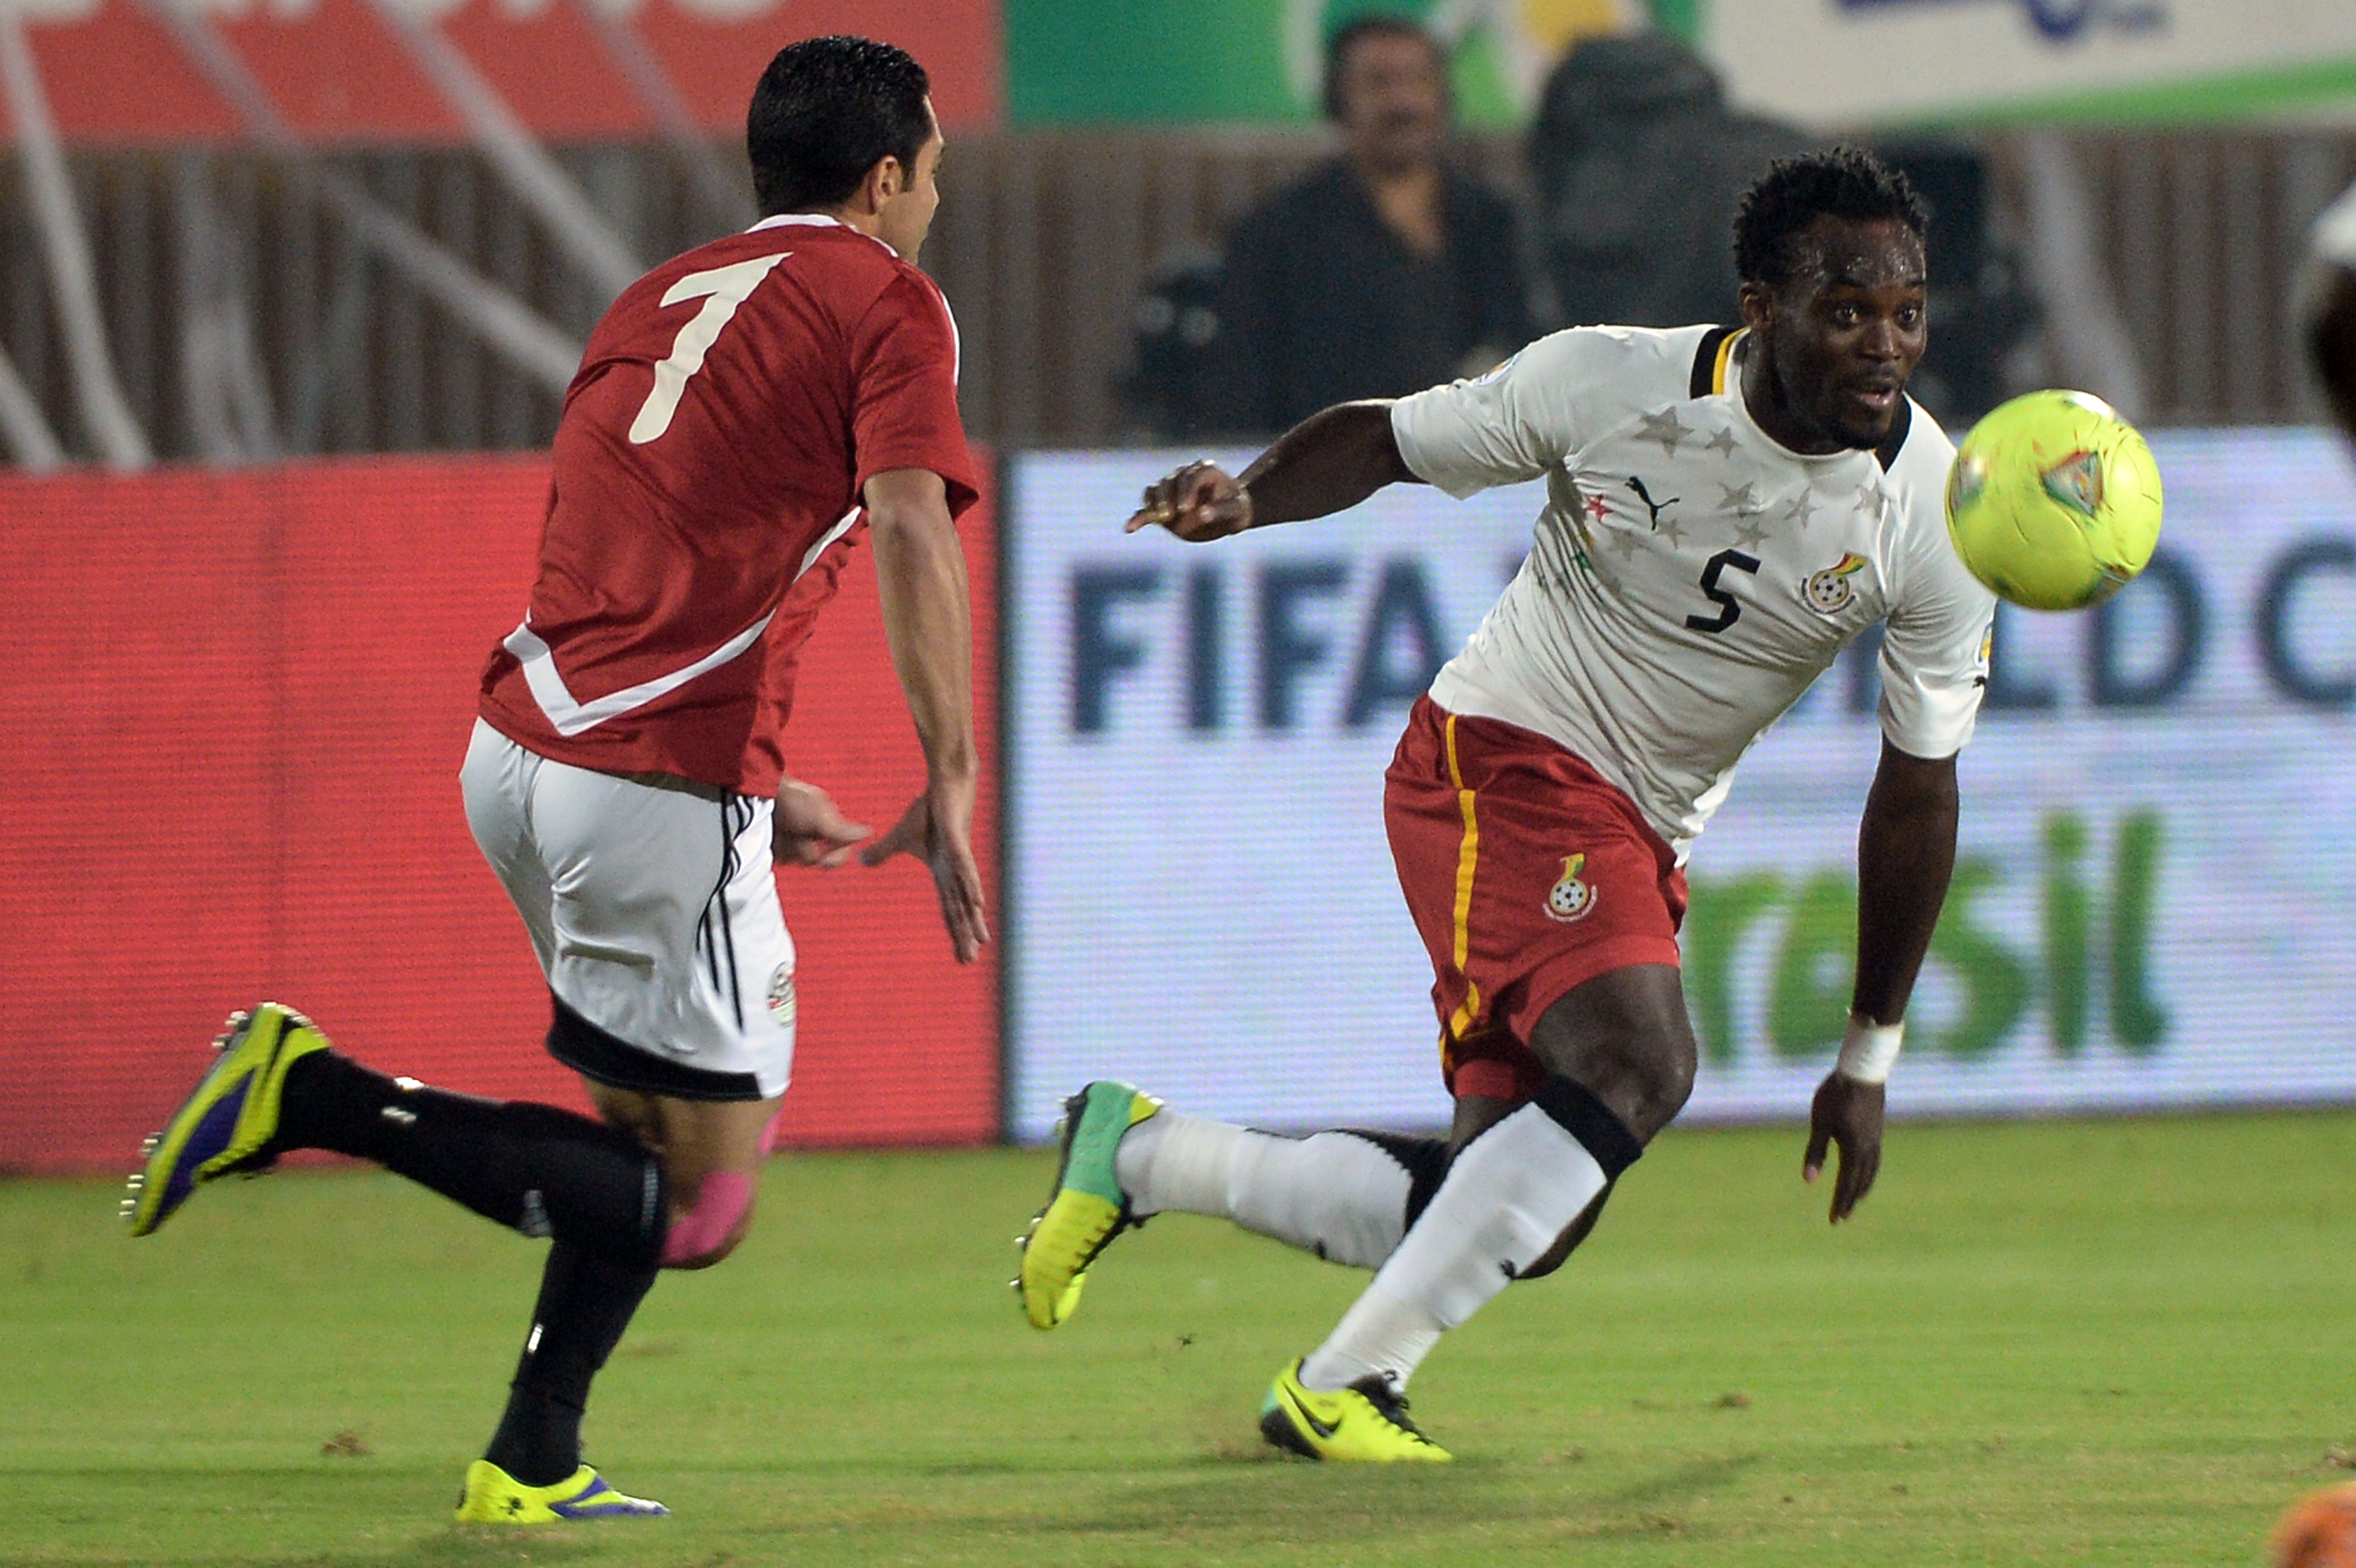 Ahmed Fathy and Michael Essien Ghanas Vs Egypt WC2014 African zone qualifier second leg play-off